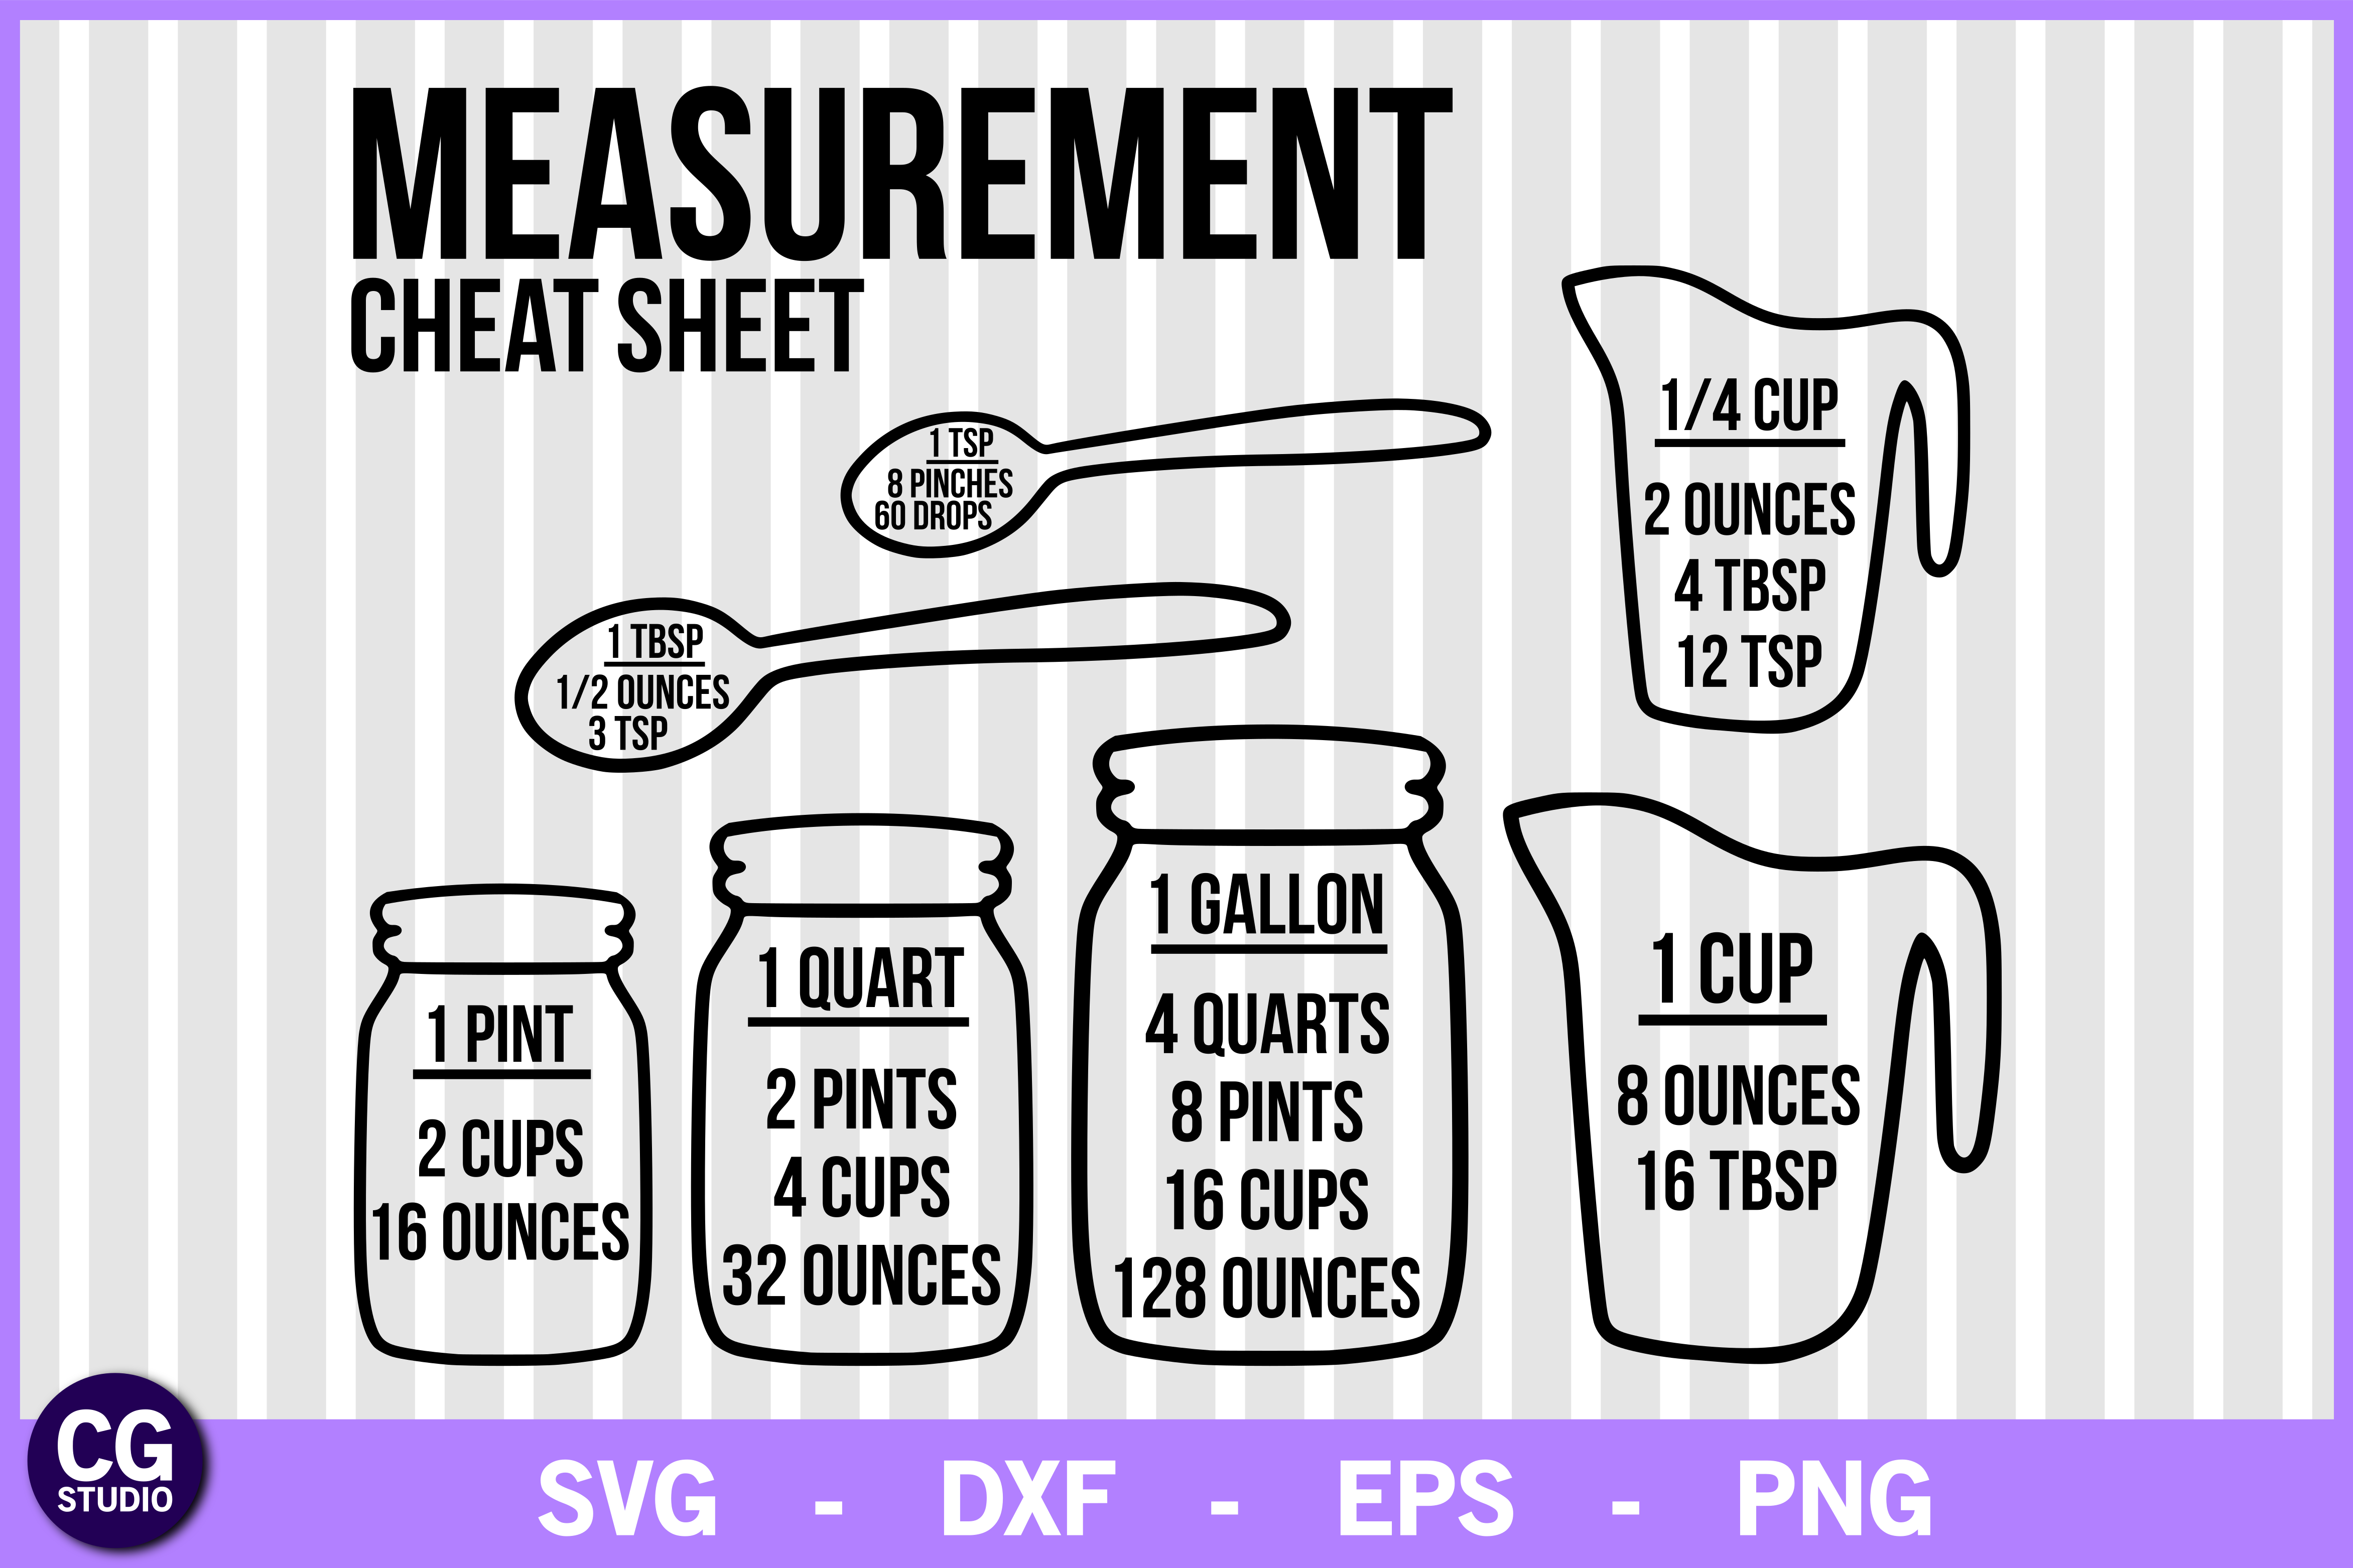 Download Free Measurement Cheat Sheet Svg Graphic By Crystalgiftsstudio for Cricut Explore, Silhouette and other cutting machines.